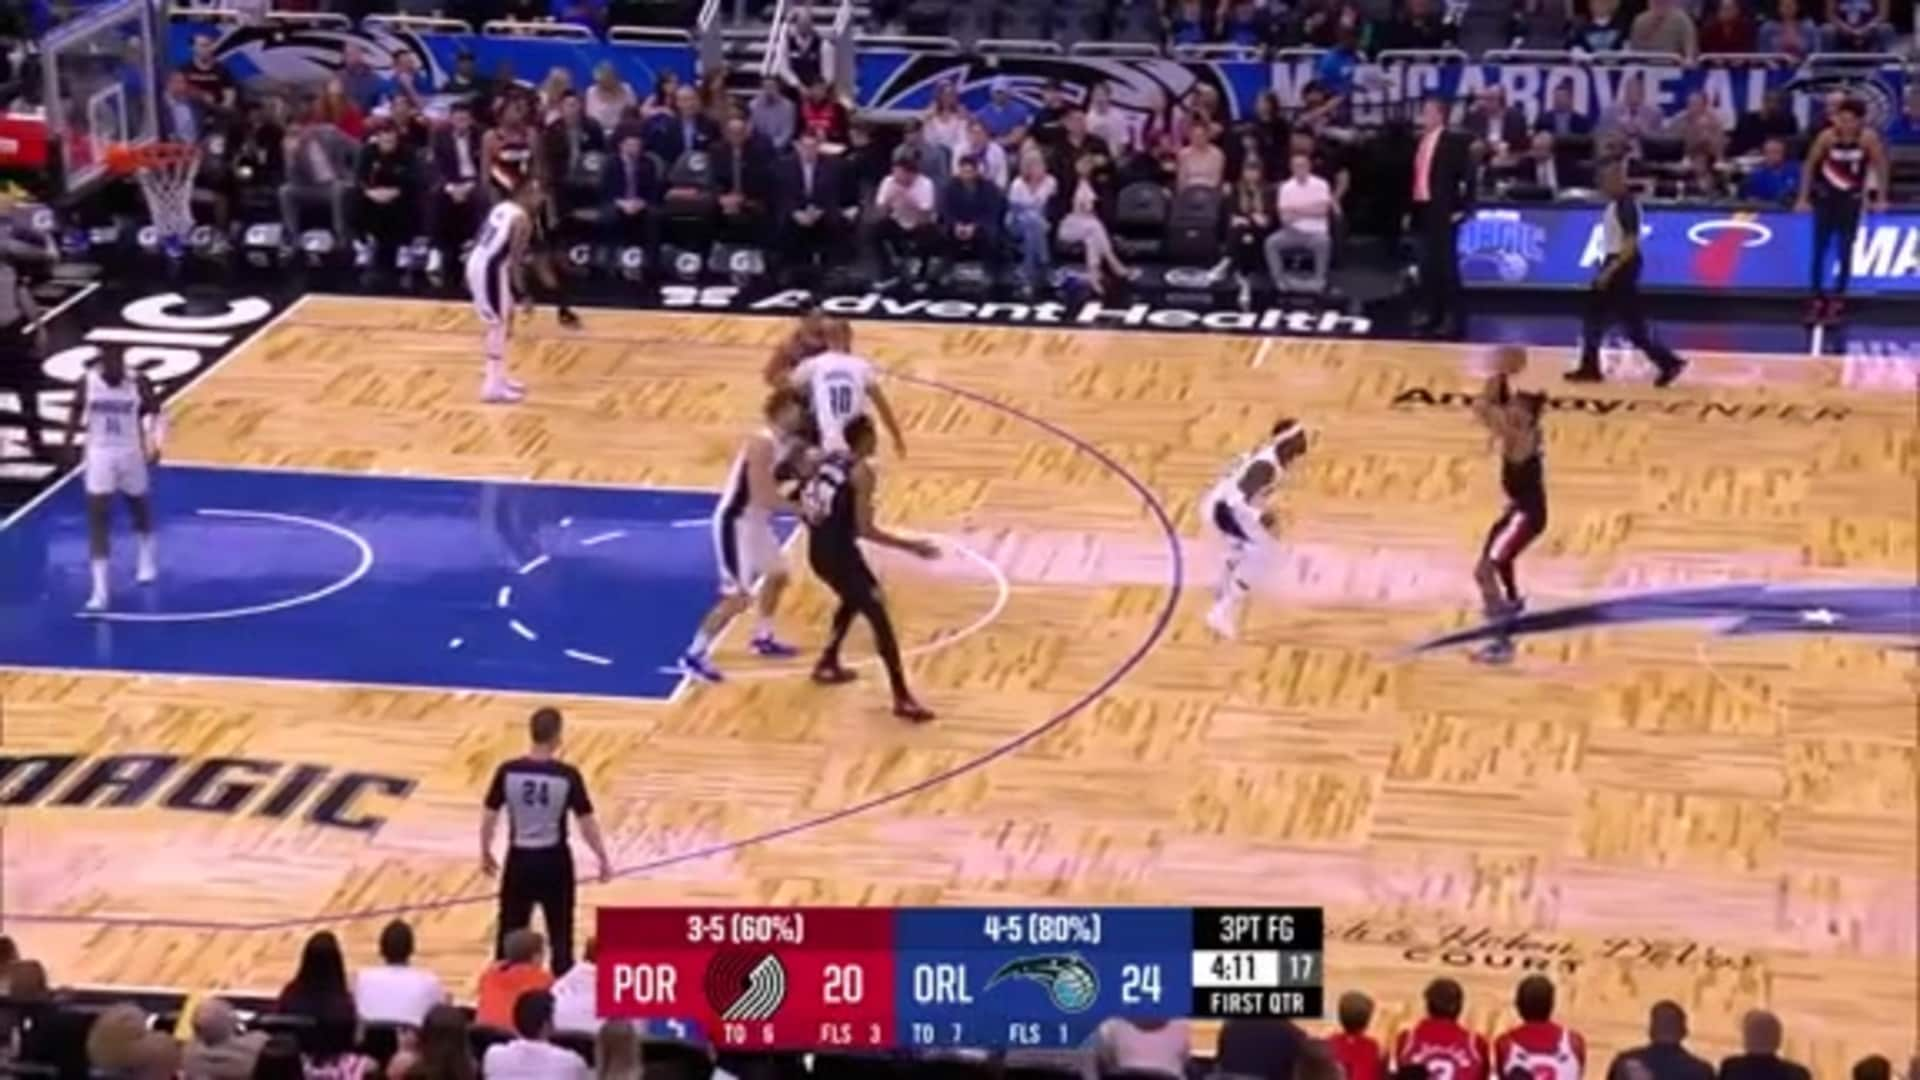 McCollum catches fire, hits four threes in the first quarter